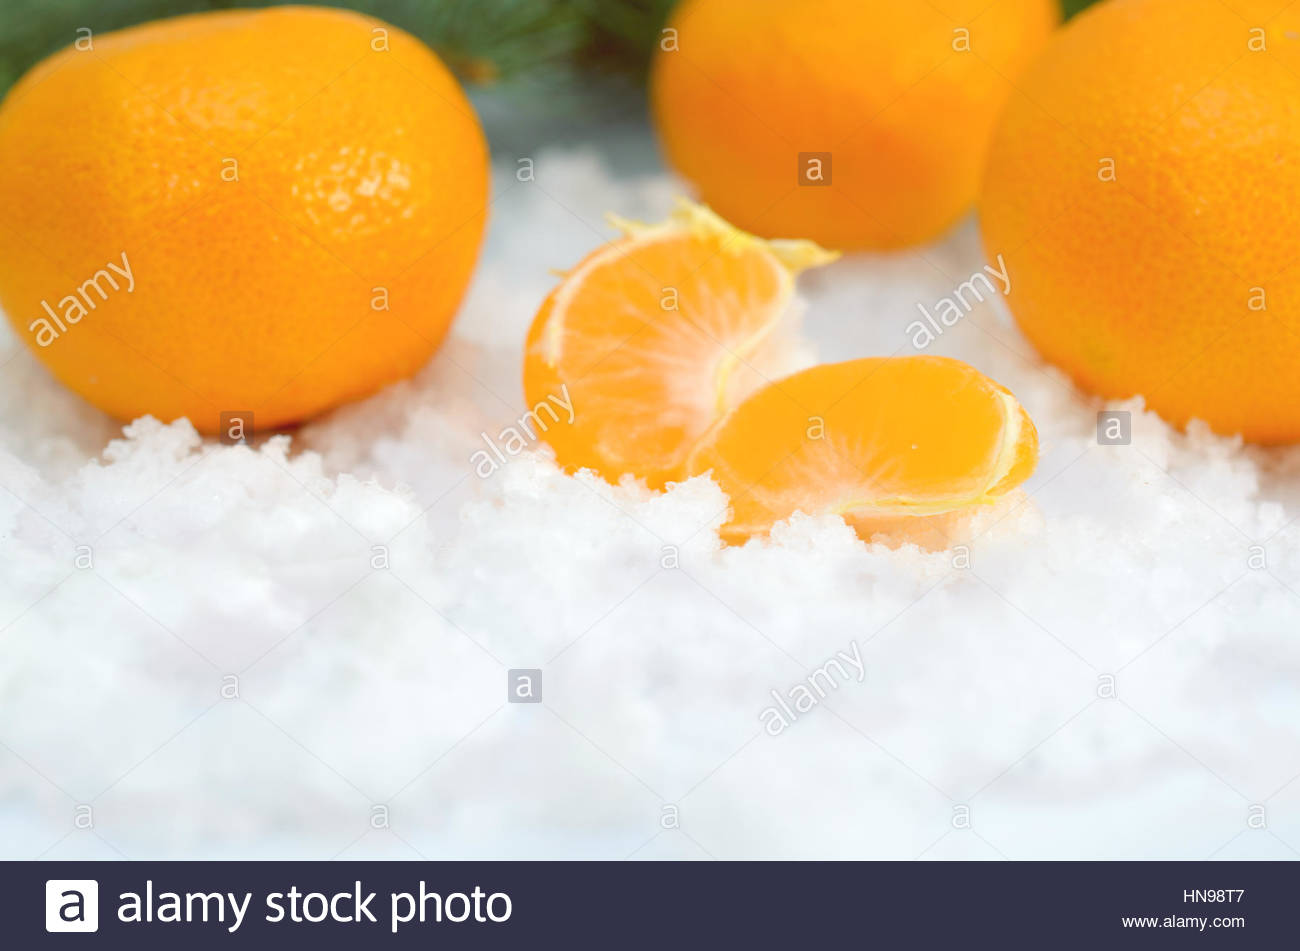 Tangerines On A White Background - Stock Image